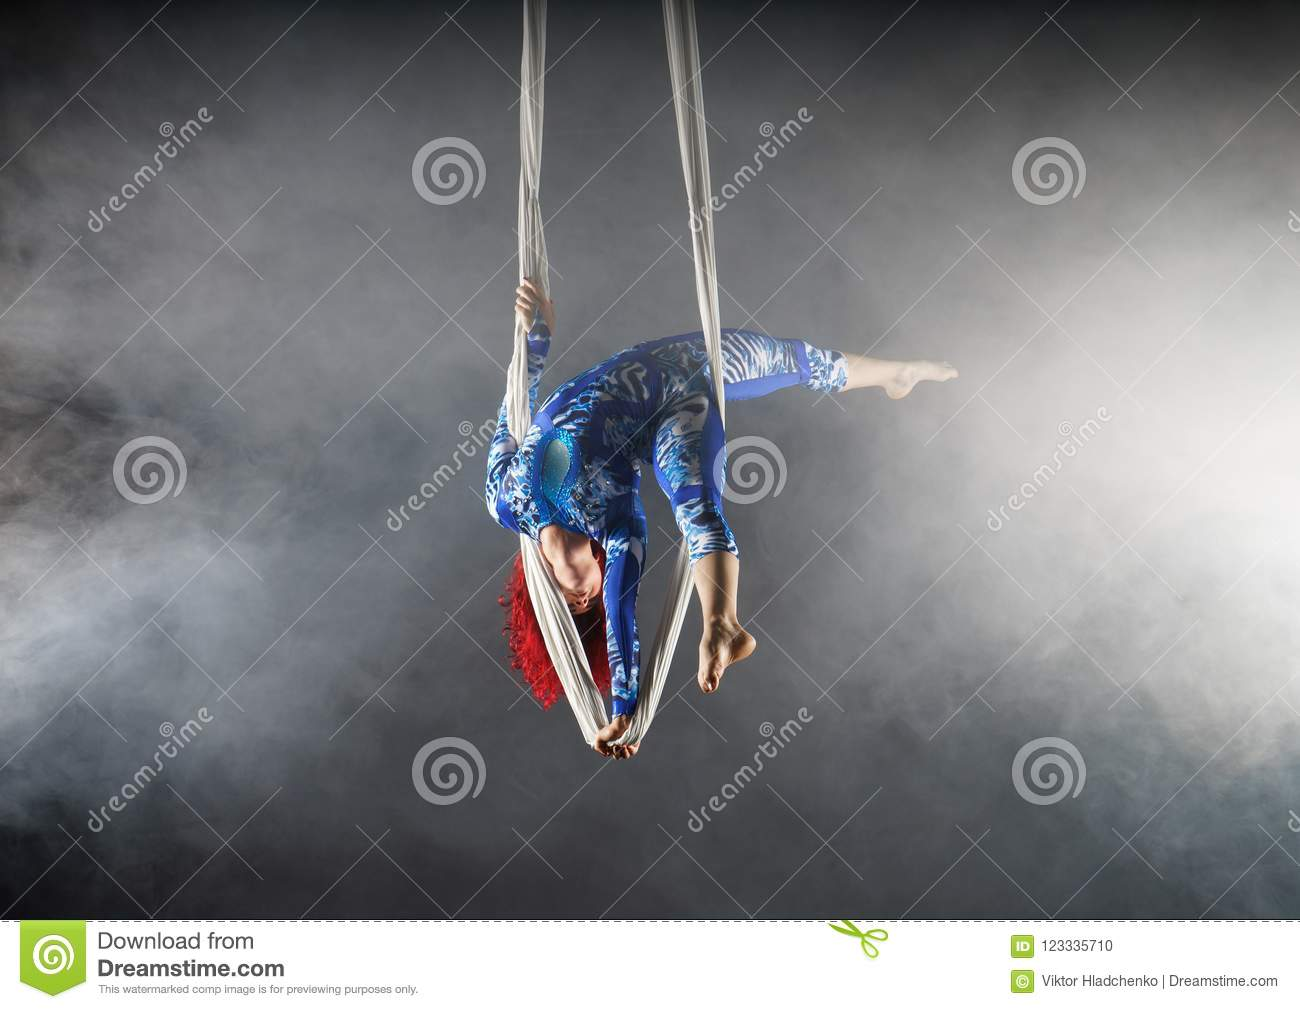 Athletic aerial circus artist with redhead in blue costume standing on one hand in the aerial silk